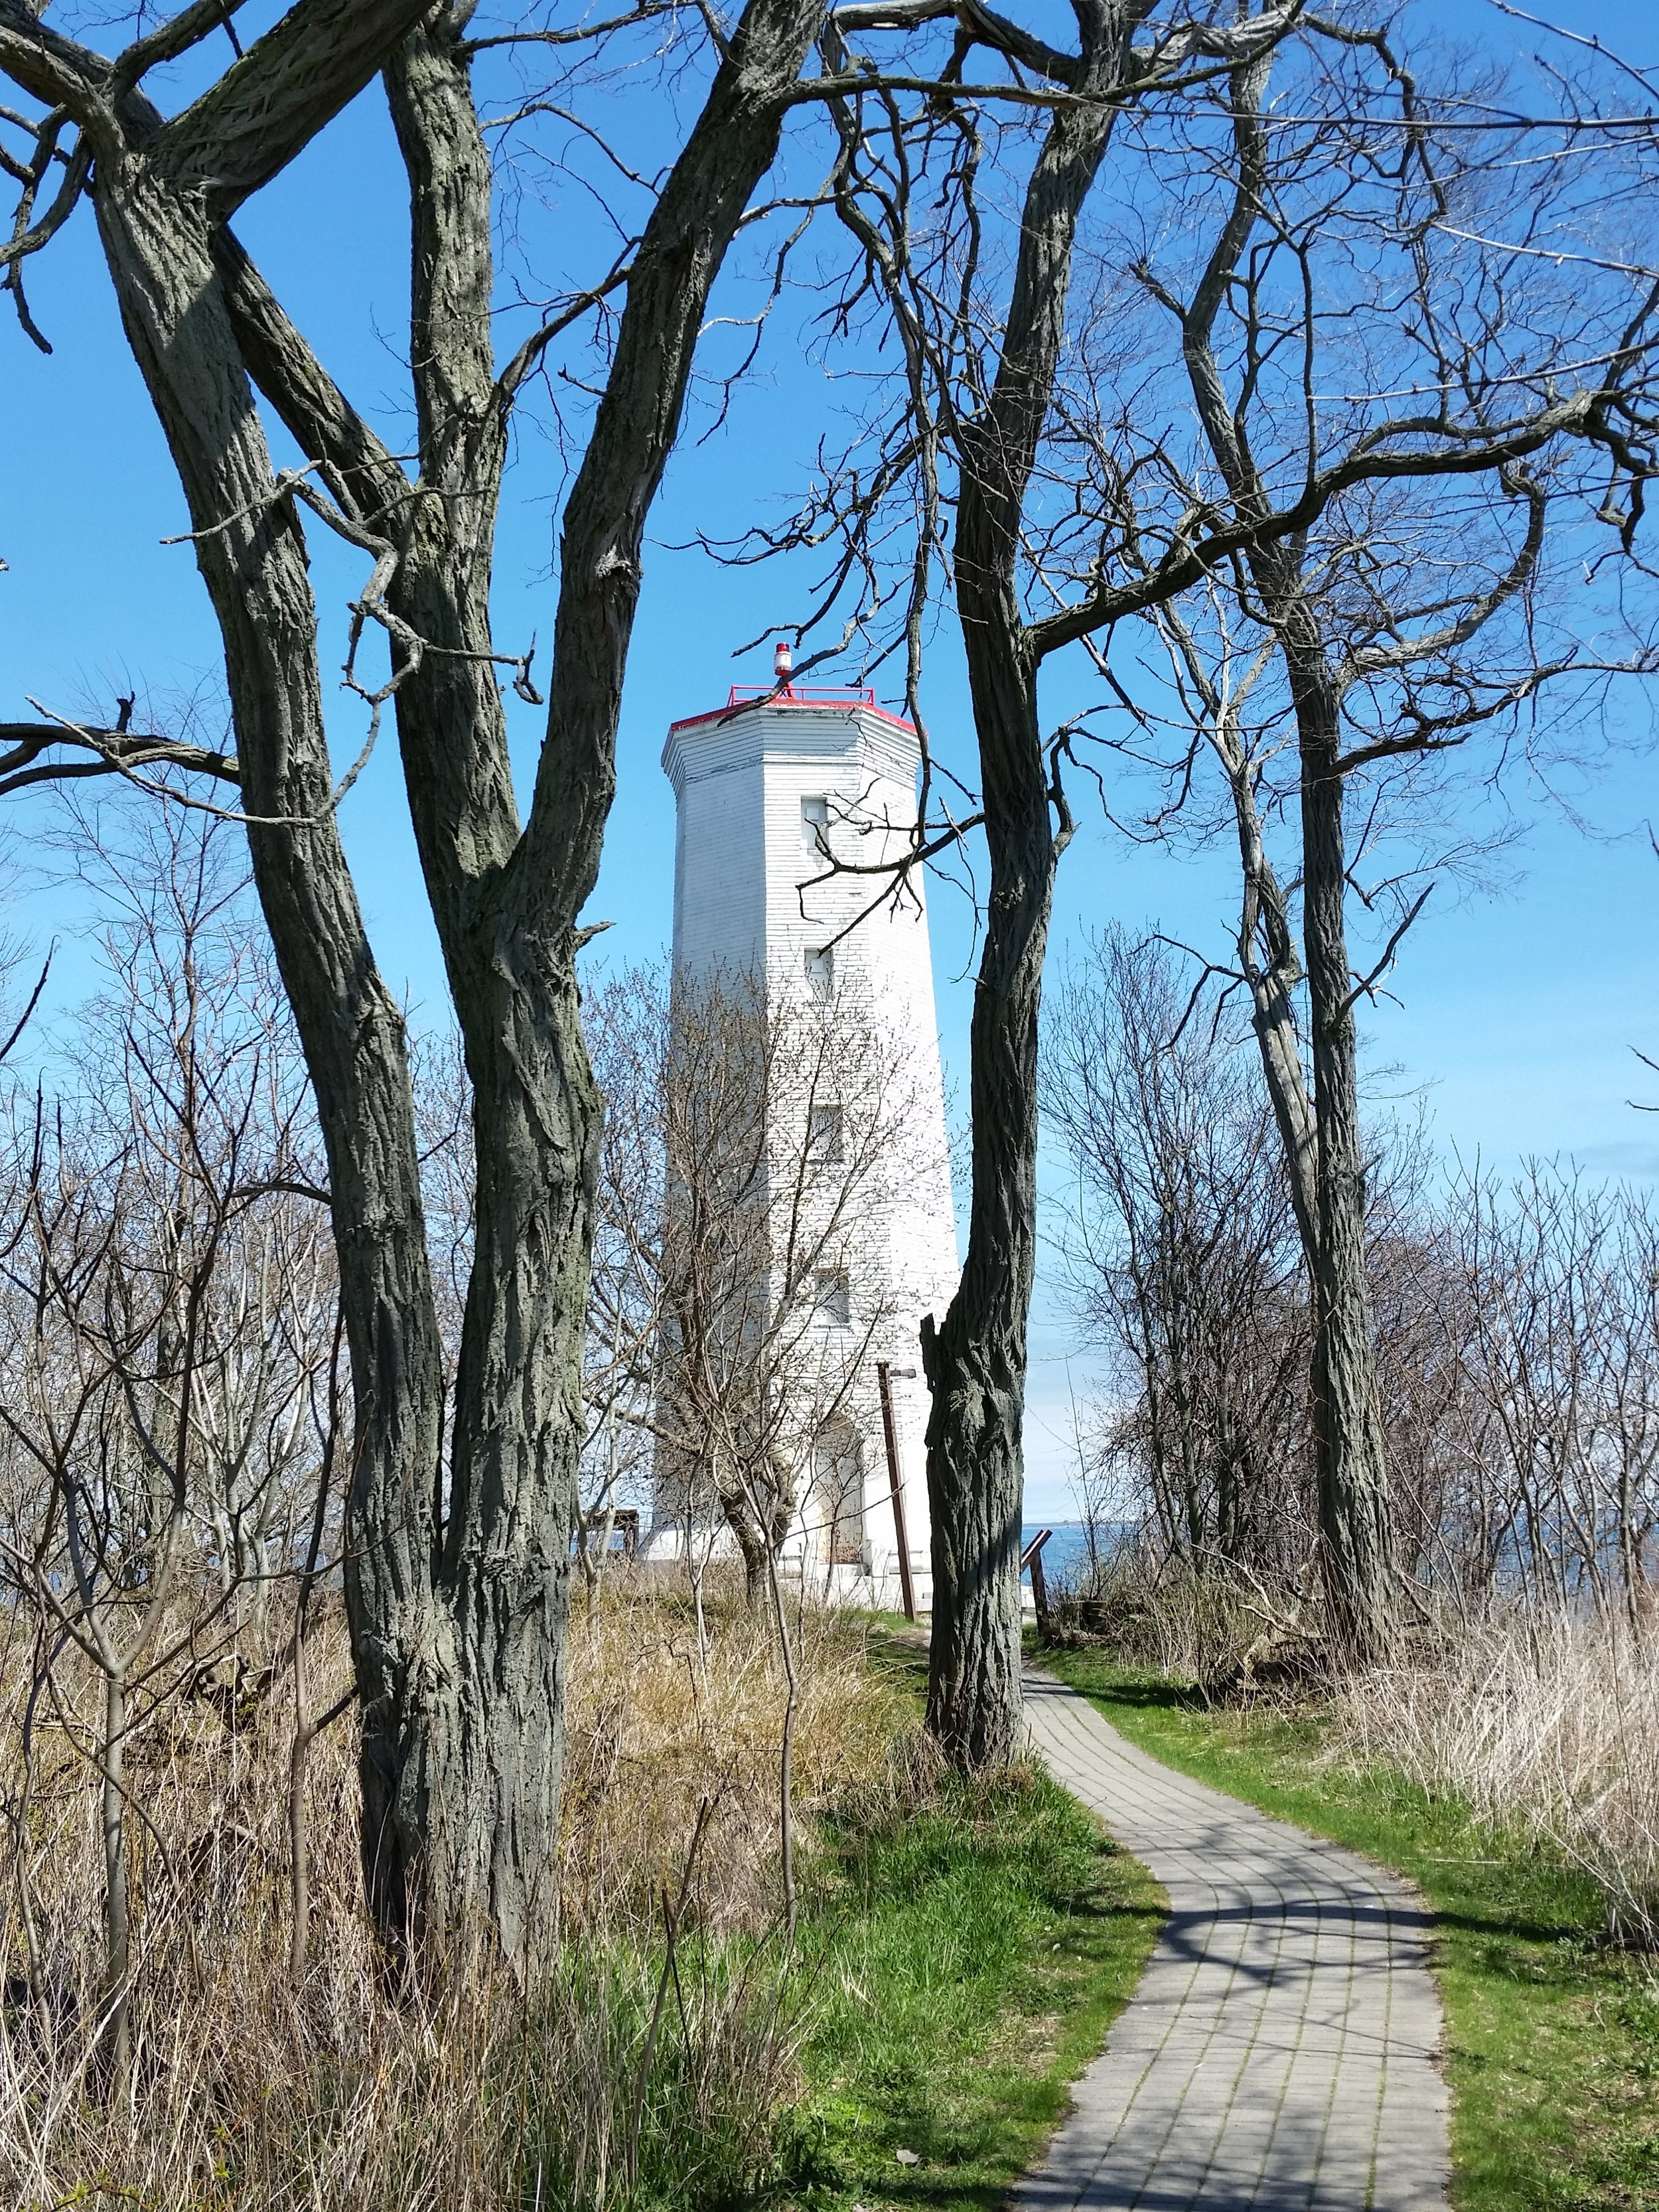 The historic Presqu'ile lighthouse.